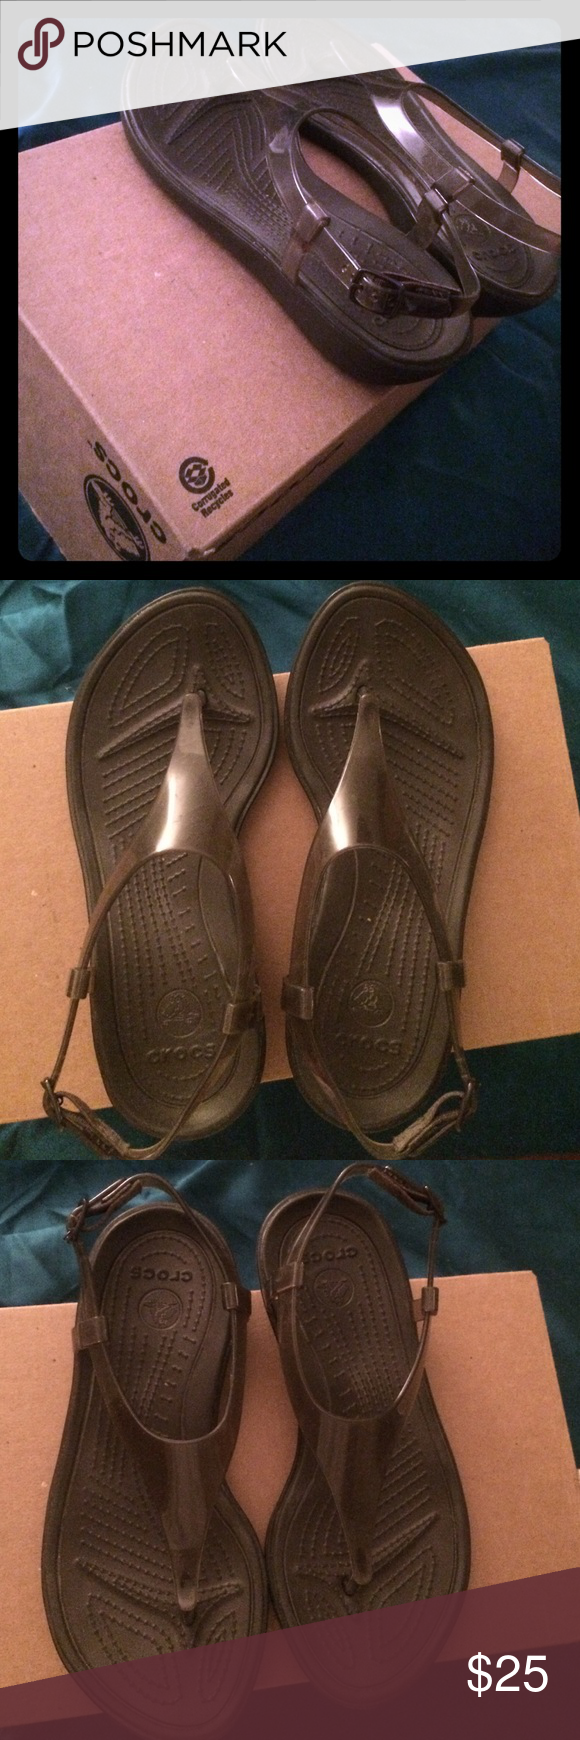 Crocs Sandals Crocs Sandals! Maroon color! Its very comfy and nice:) ❤️❤️❤️ Size 6 worn once CROCS Shoes Sandals